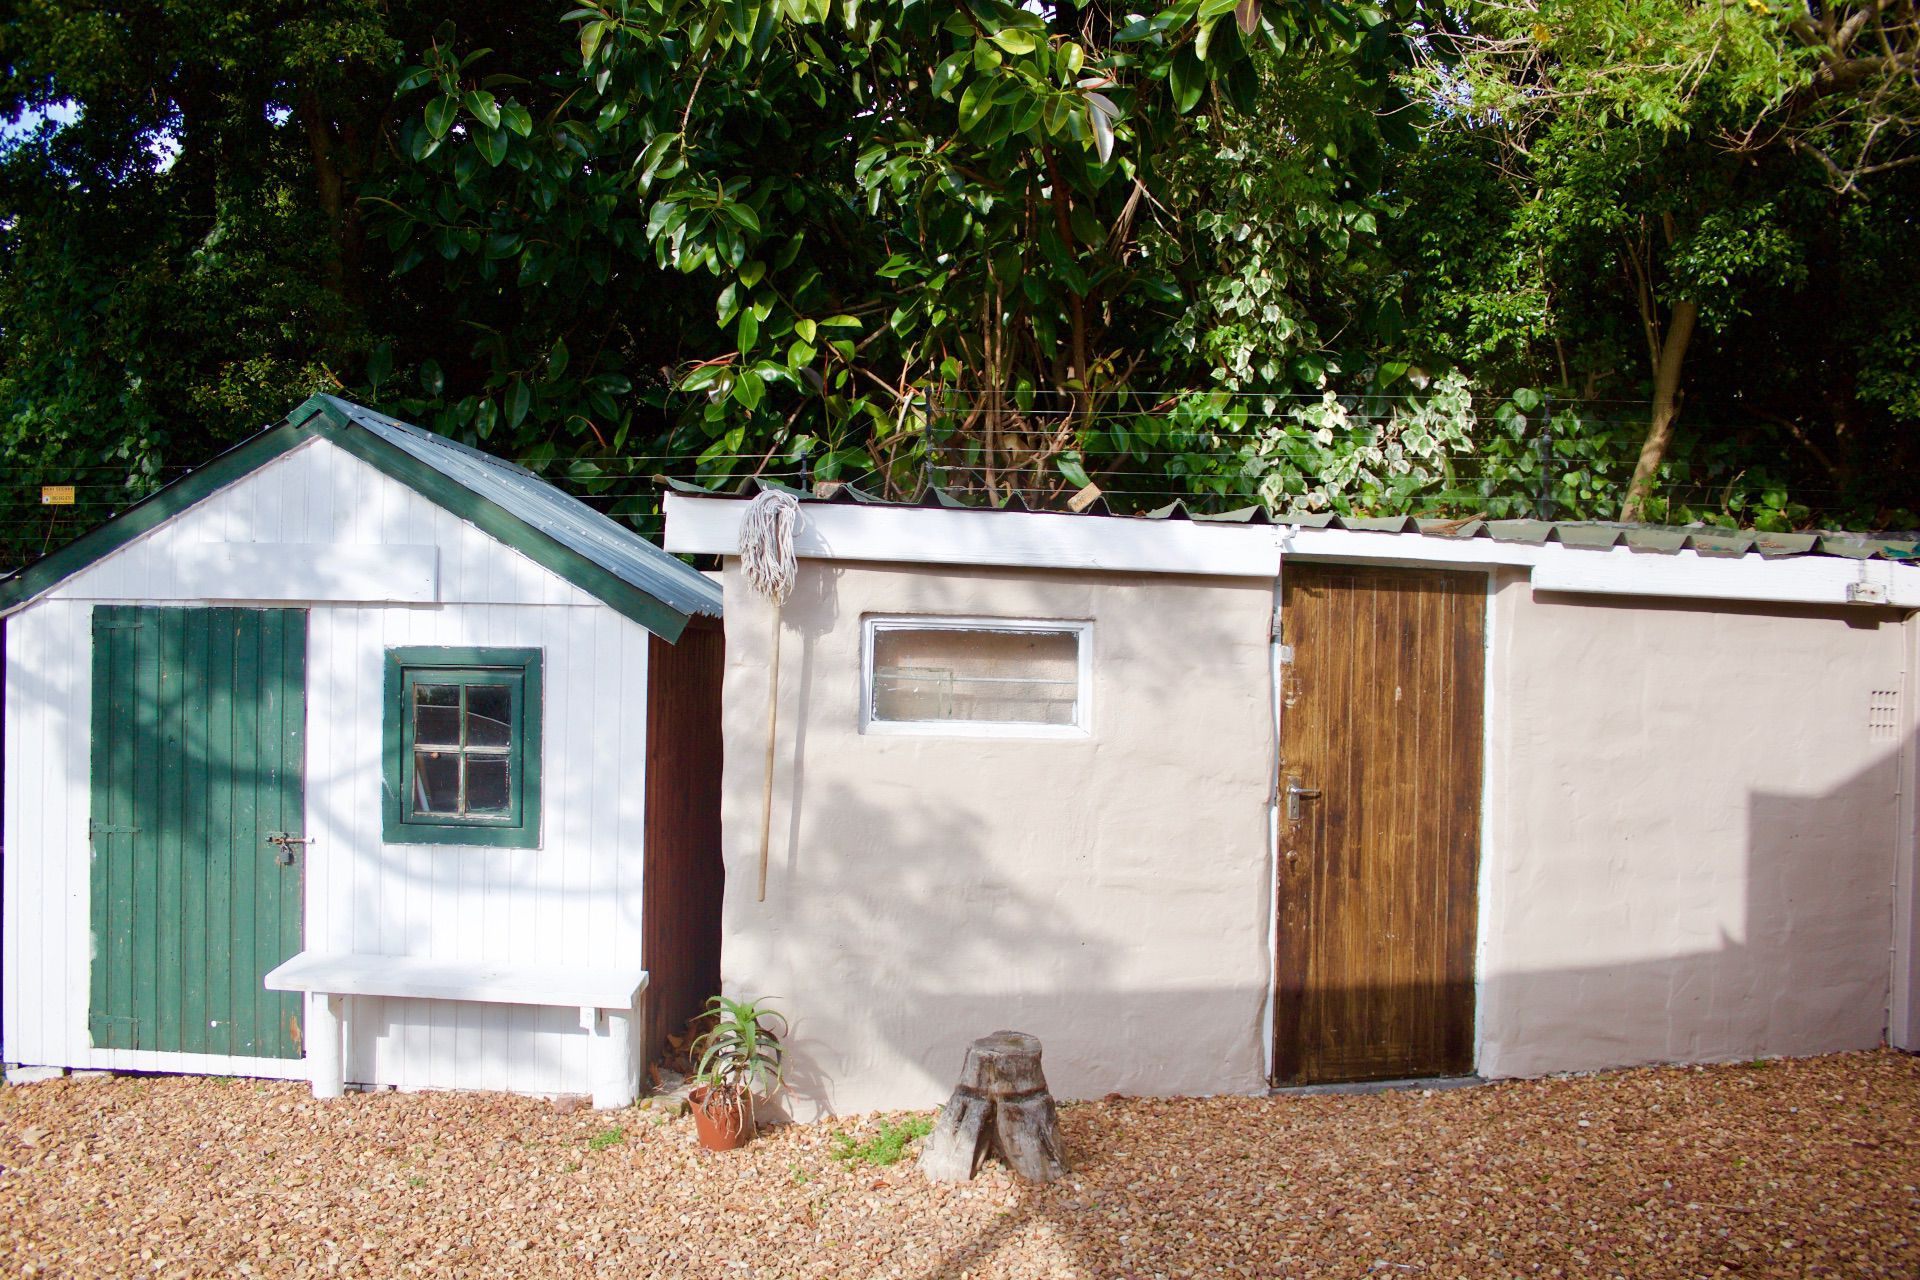 House in Hout Bay - staff Flat and garden shed